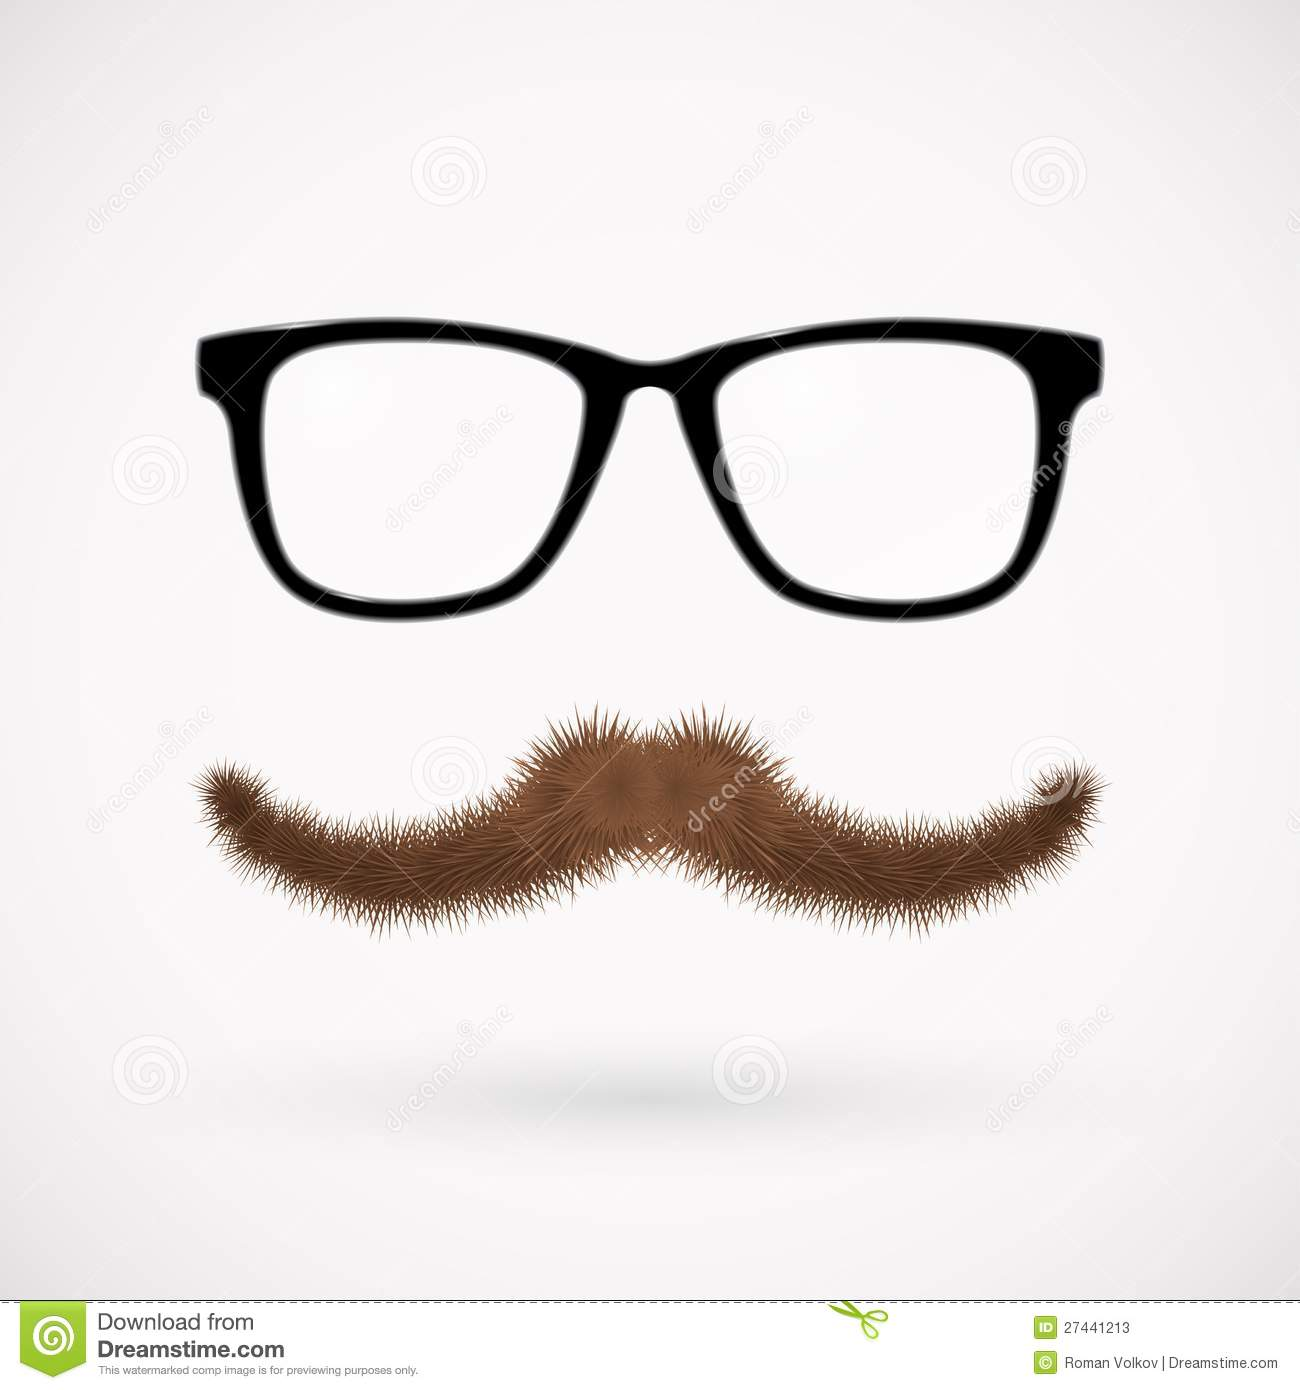 Hipster Glasses And Mustache Stock Photos - Image: 27441213